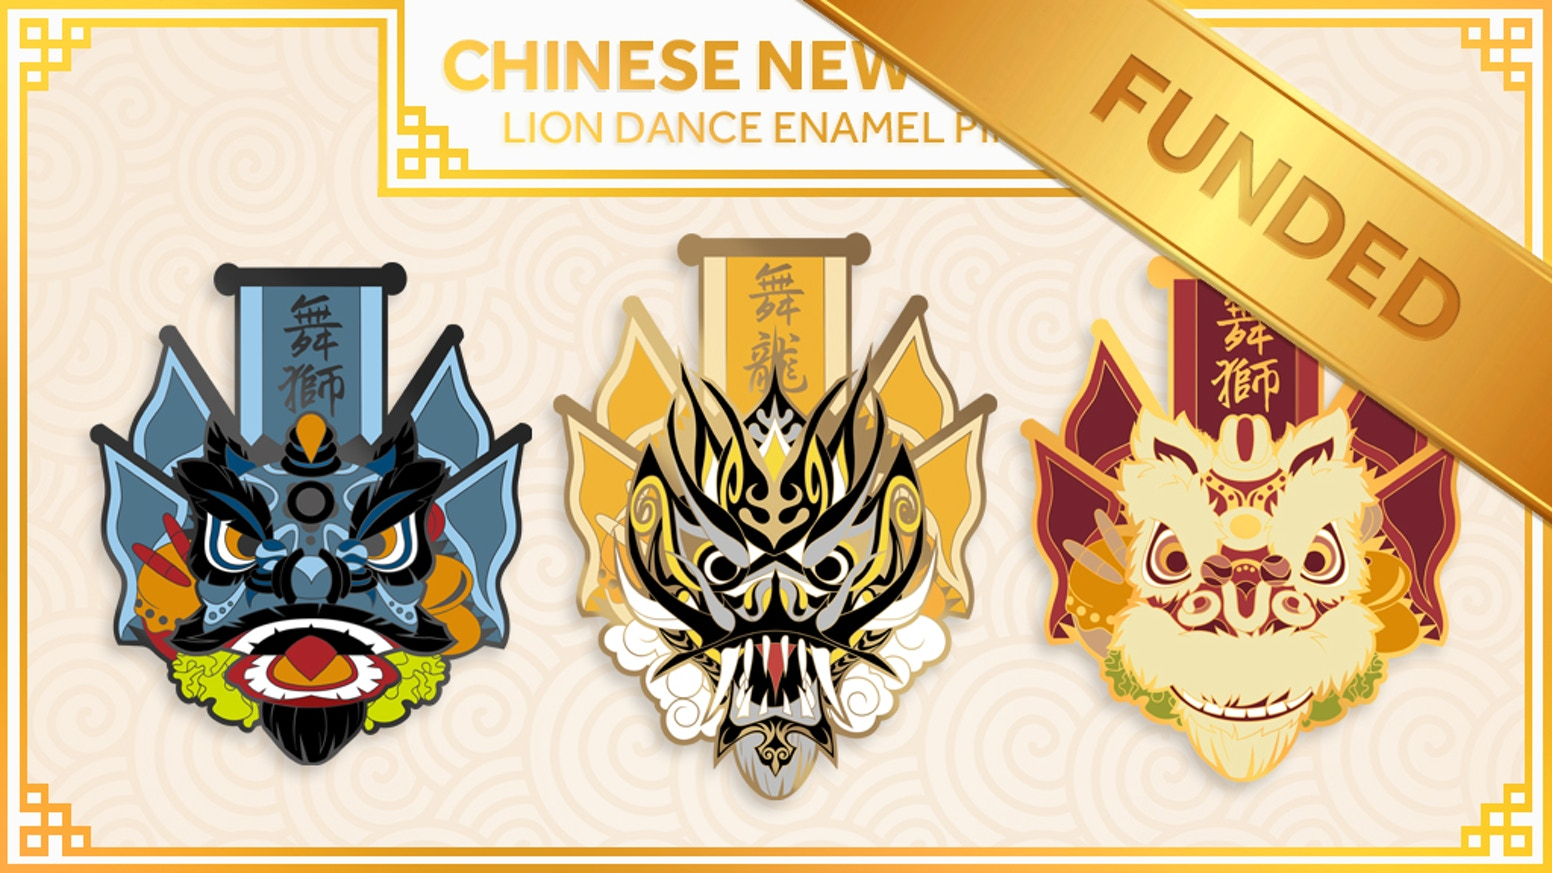 Custom boutique designed Chinese New Year Lion Dance enamel pins featuring the futsan and hoksan lion, and Chinese dragon.